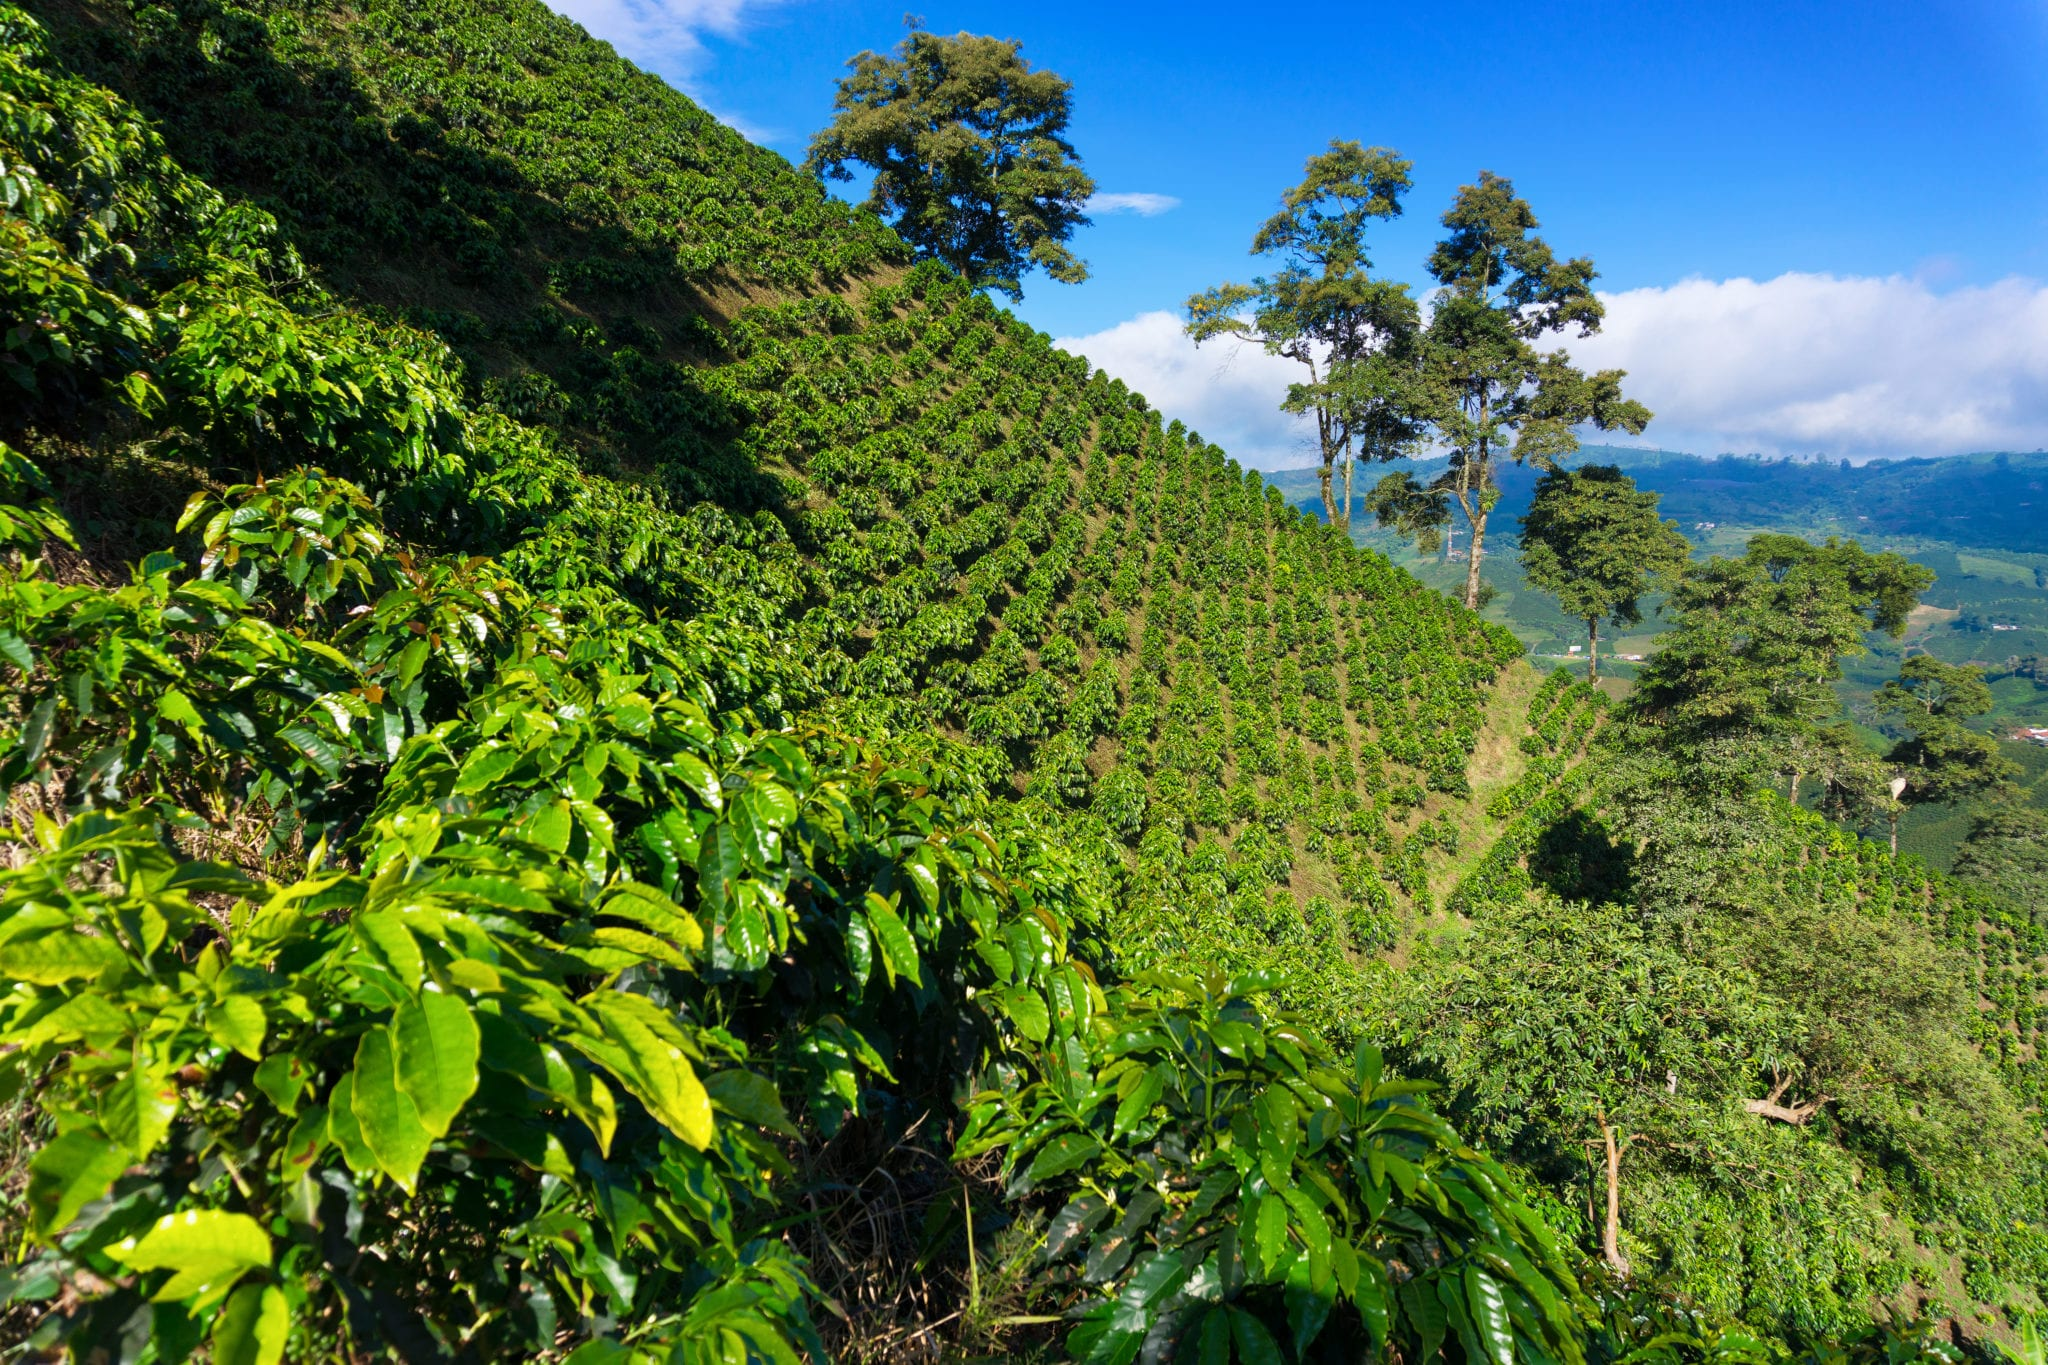 Ikänik Farms first in Colombia to gain GMP certification to grow and process cannabis